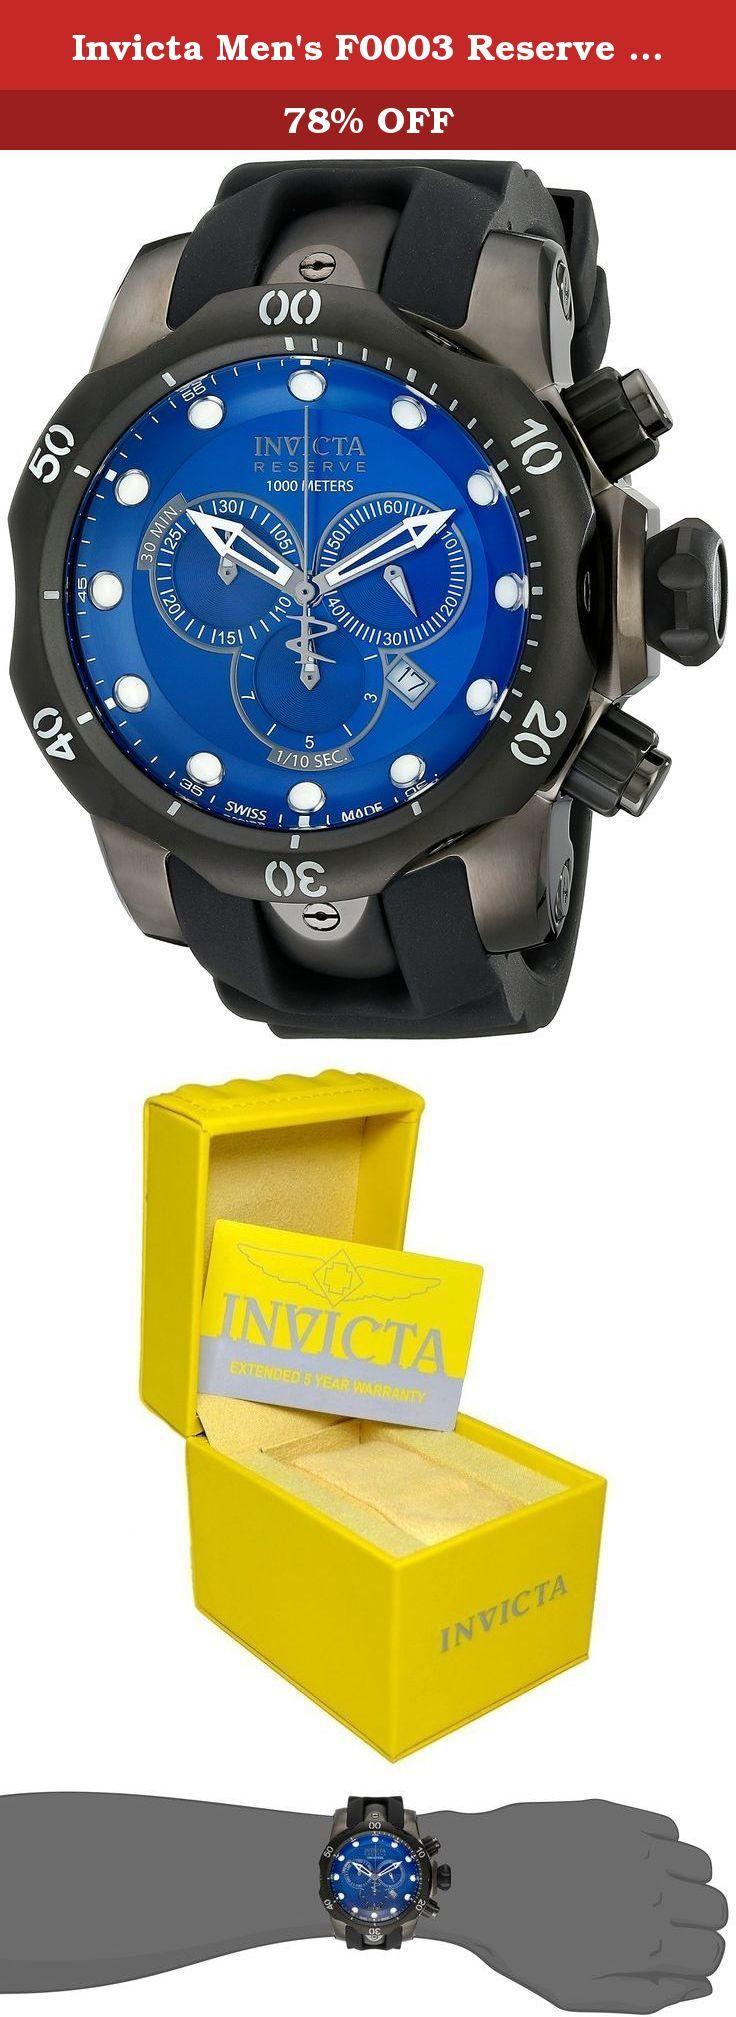 """Invicta Men's F0003 Reserve Collection Venom Chronograph Gunmetal Ion-Plated Watch. Taking its name from """"invincible"""" in Latin, the Invicta watch company was founded in Switzerland in 1837. Exceptional in design and craftsmanship, Invicta watches like this Activa reflect the company's founding principle of offering high-quality Swiss watches at affordable prices. The Dome Crystal Champagne/Red Watch features a rectangular champagne-color face, luminous oversize numerals/markers, and..."""